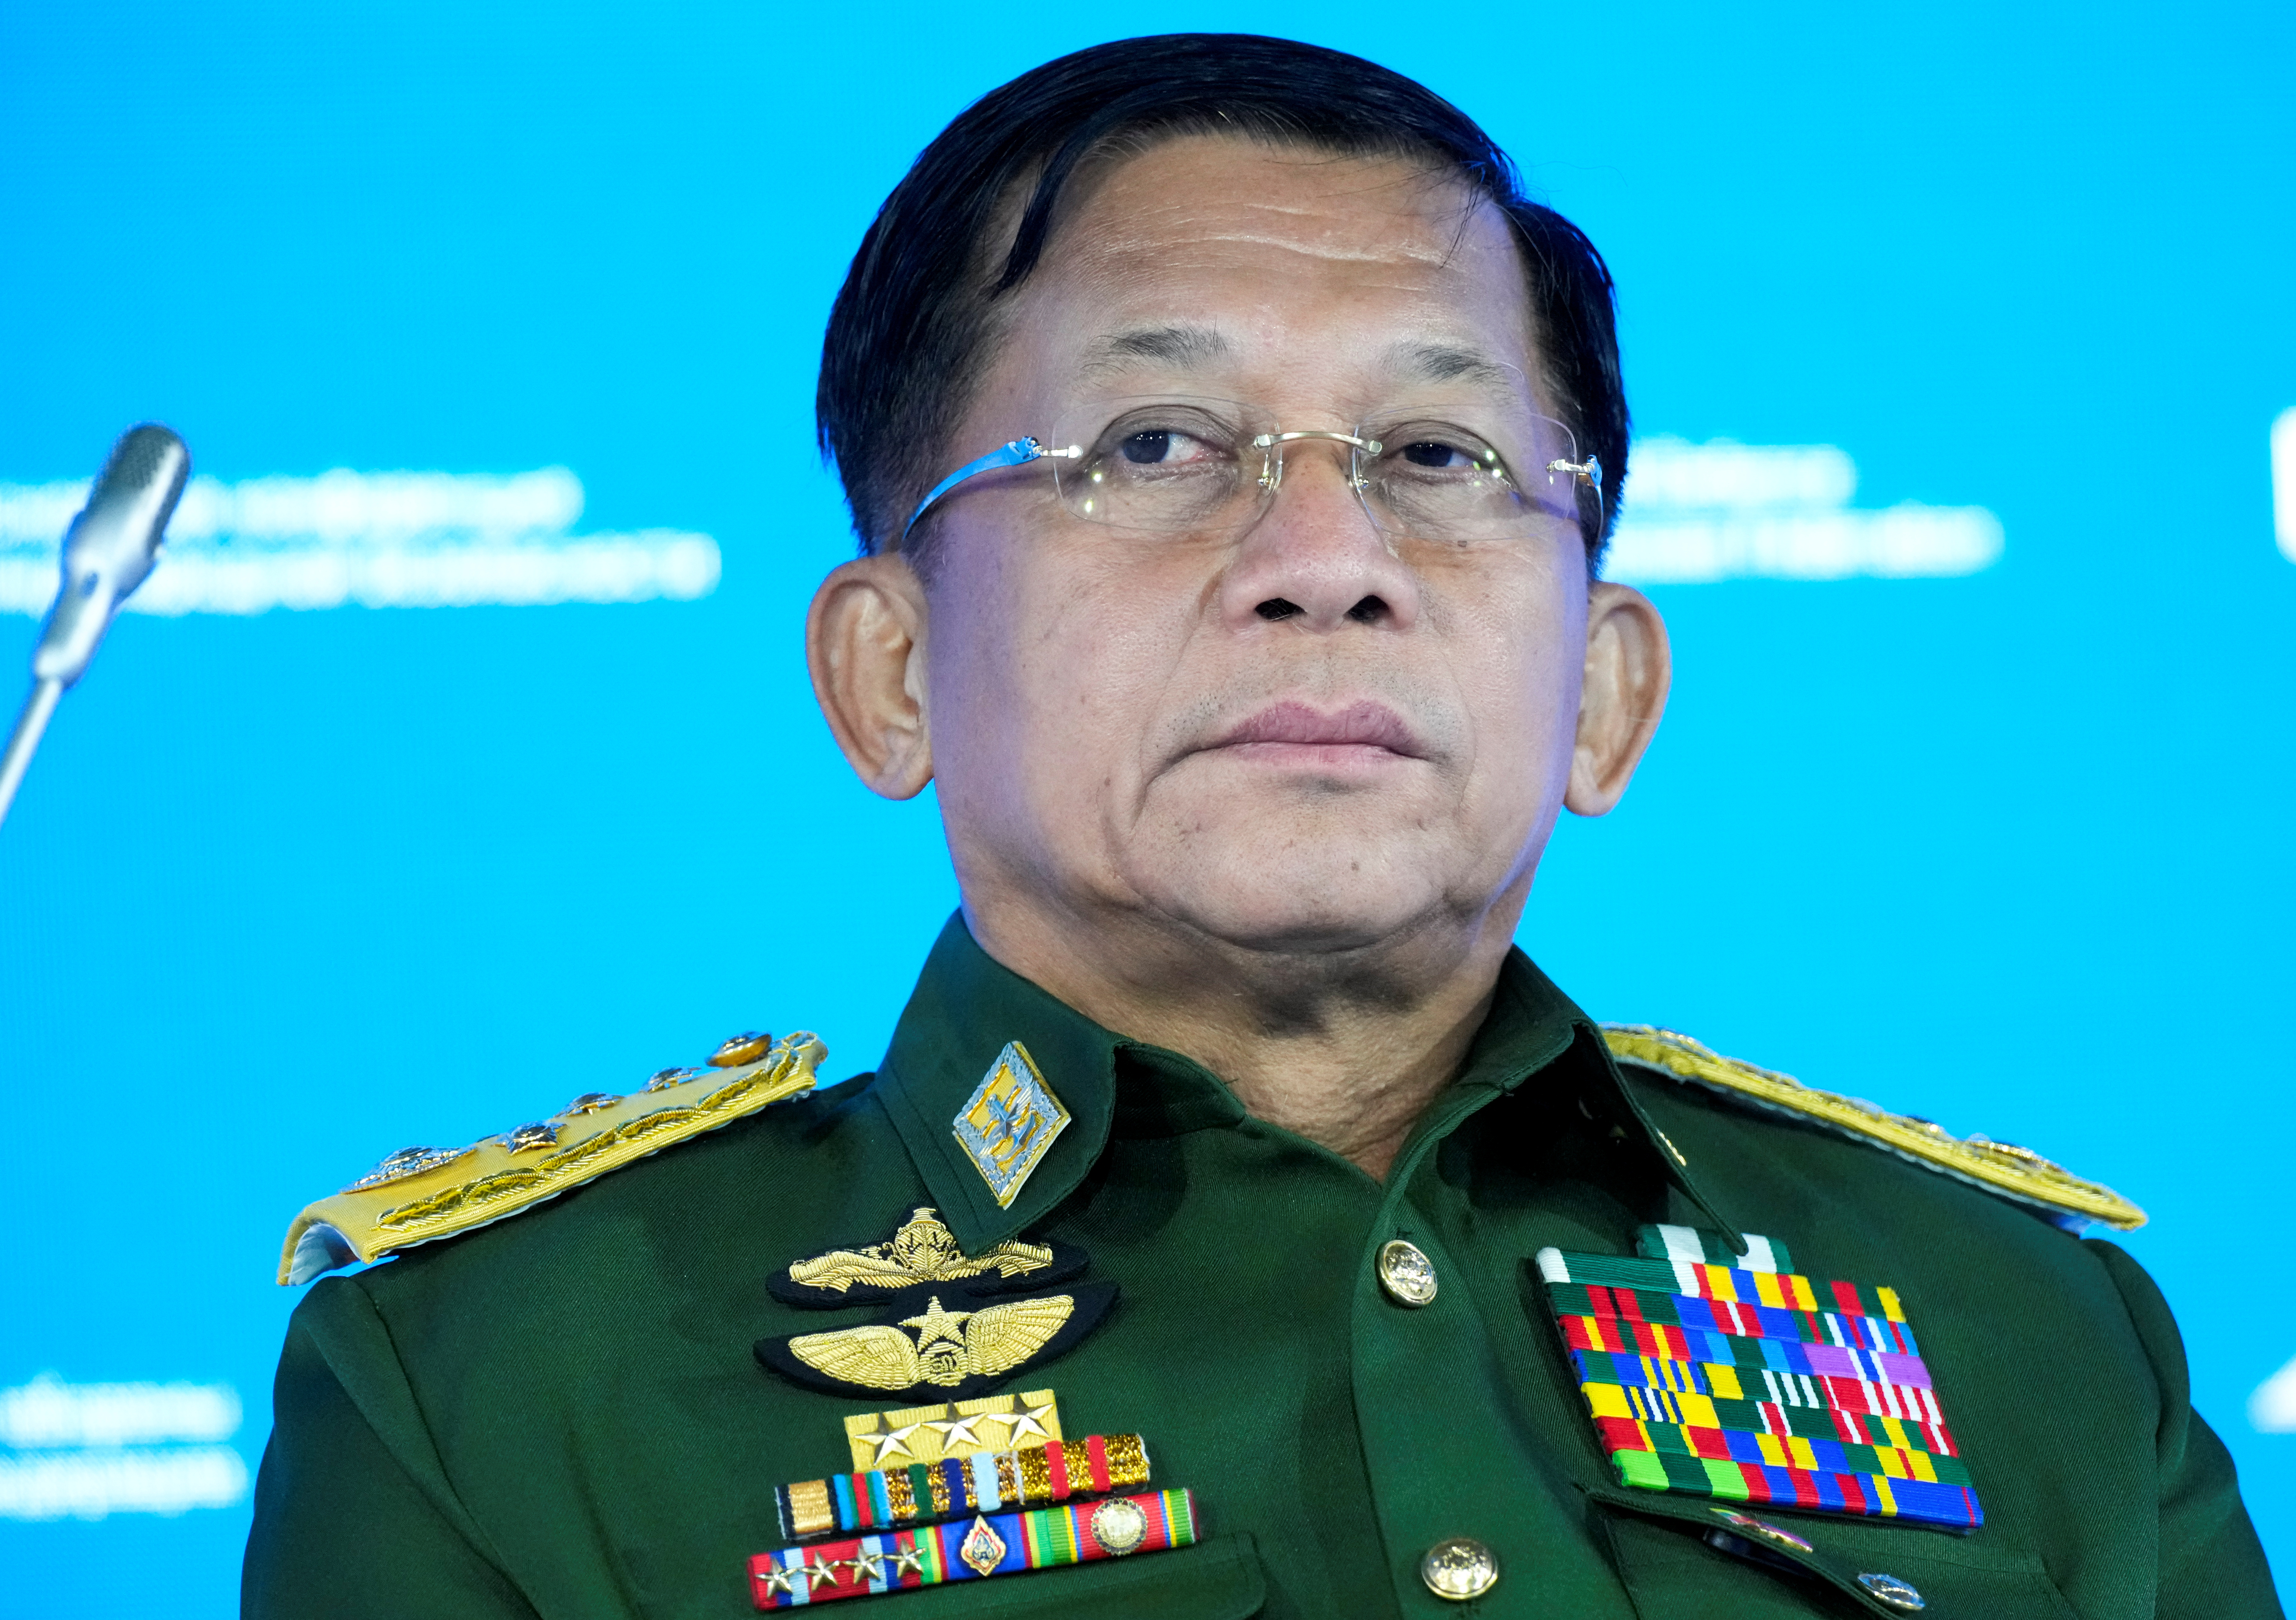 Commander-in-Chief of Myanmar's armed forces, Senior General Min Aung Hlaing attends the IX Moscow conference on international security in Moscow, Russia June 23, 2021. Alexander Zemlianichenko/Pool via REUTERS